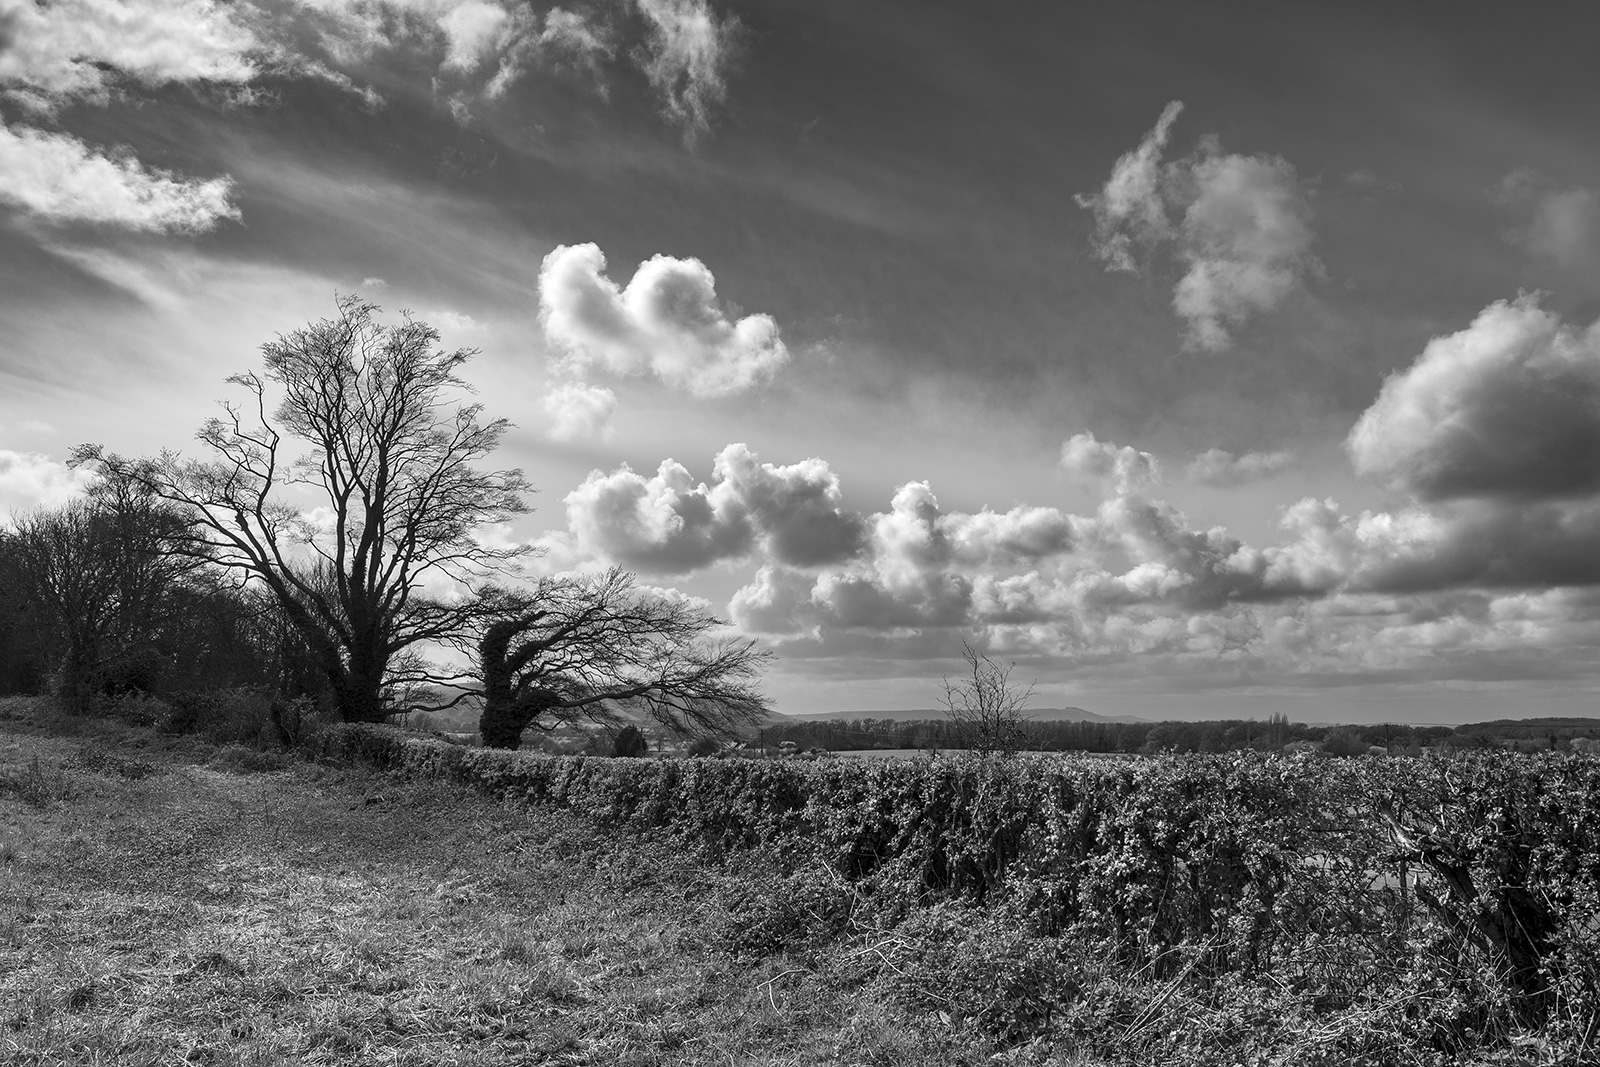 Ancient oak trees by hedge on Beggar's Lane Newtimber West Sussex UK black and white rural landscape ©P. Maton 2019 eyeteeth.net